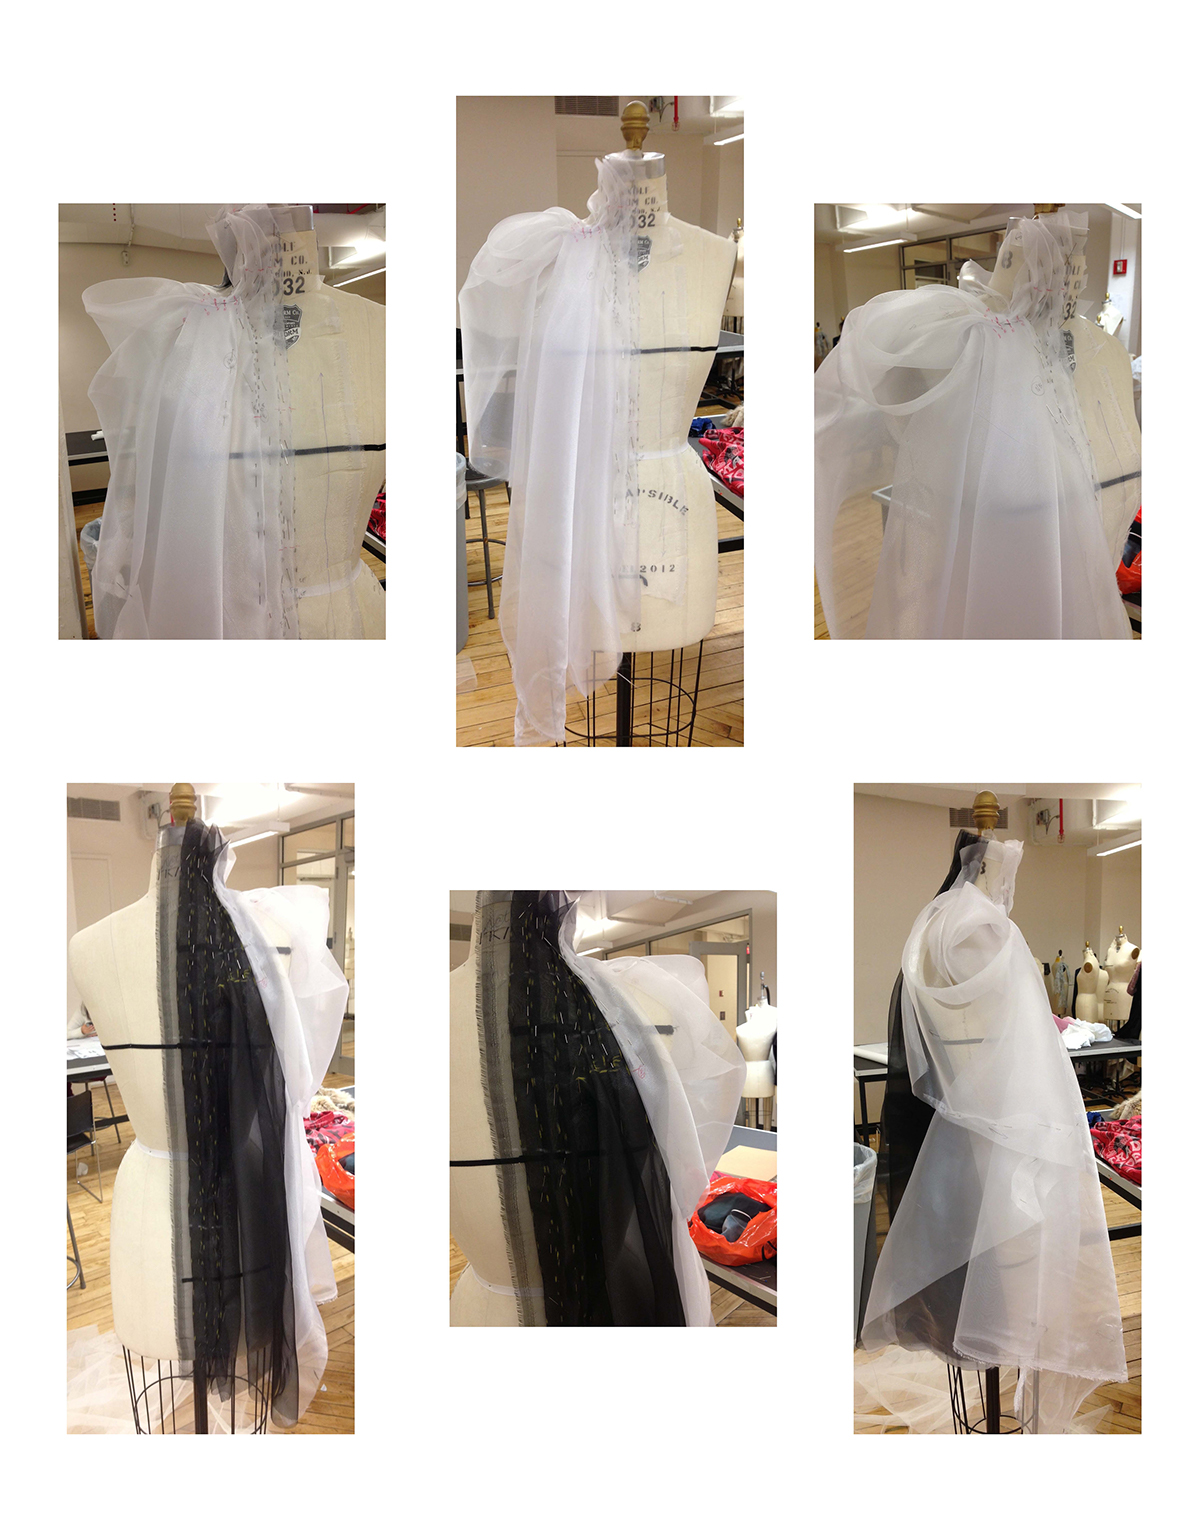 Experimental Drapes on Behance for Drapes In Garments  45ifm